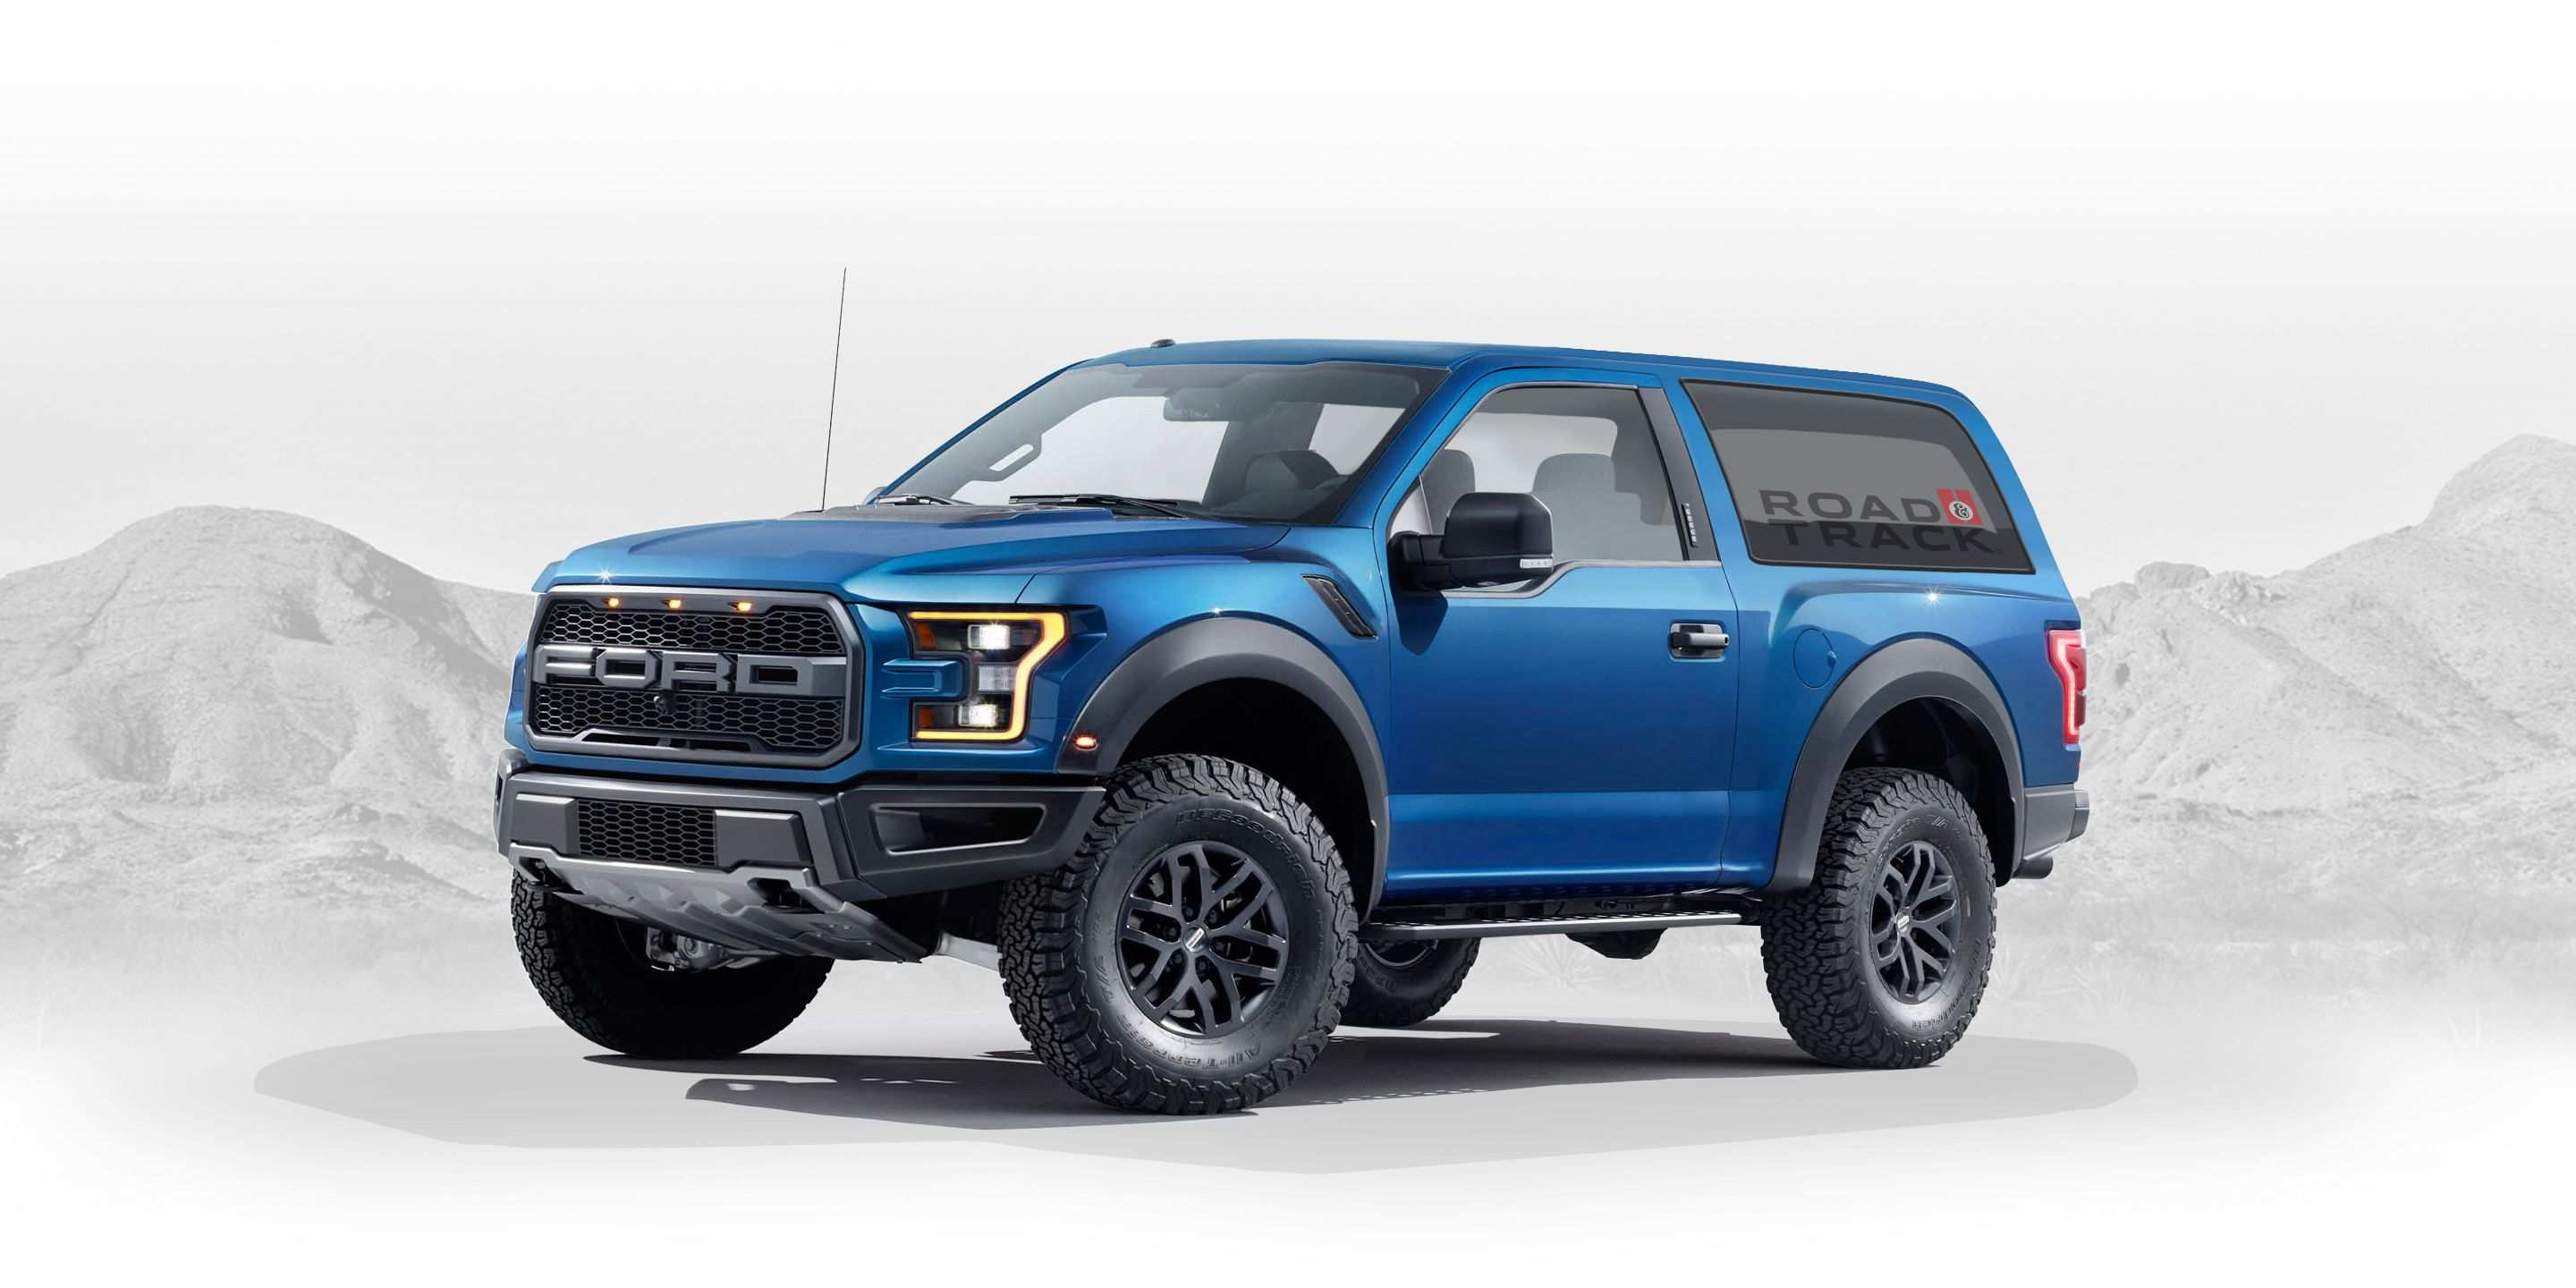 92 New 2020 Ford Bronco Latest News Performance and New Engine with 2020 Ford Bronco Latest News